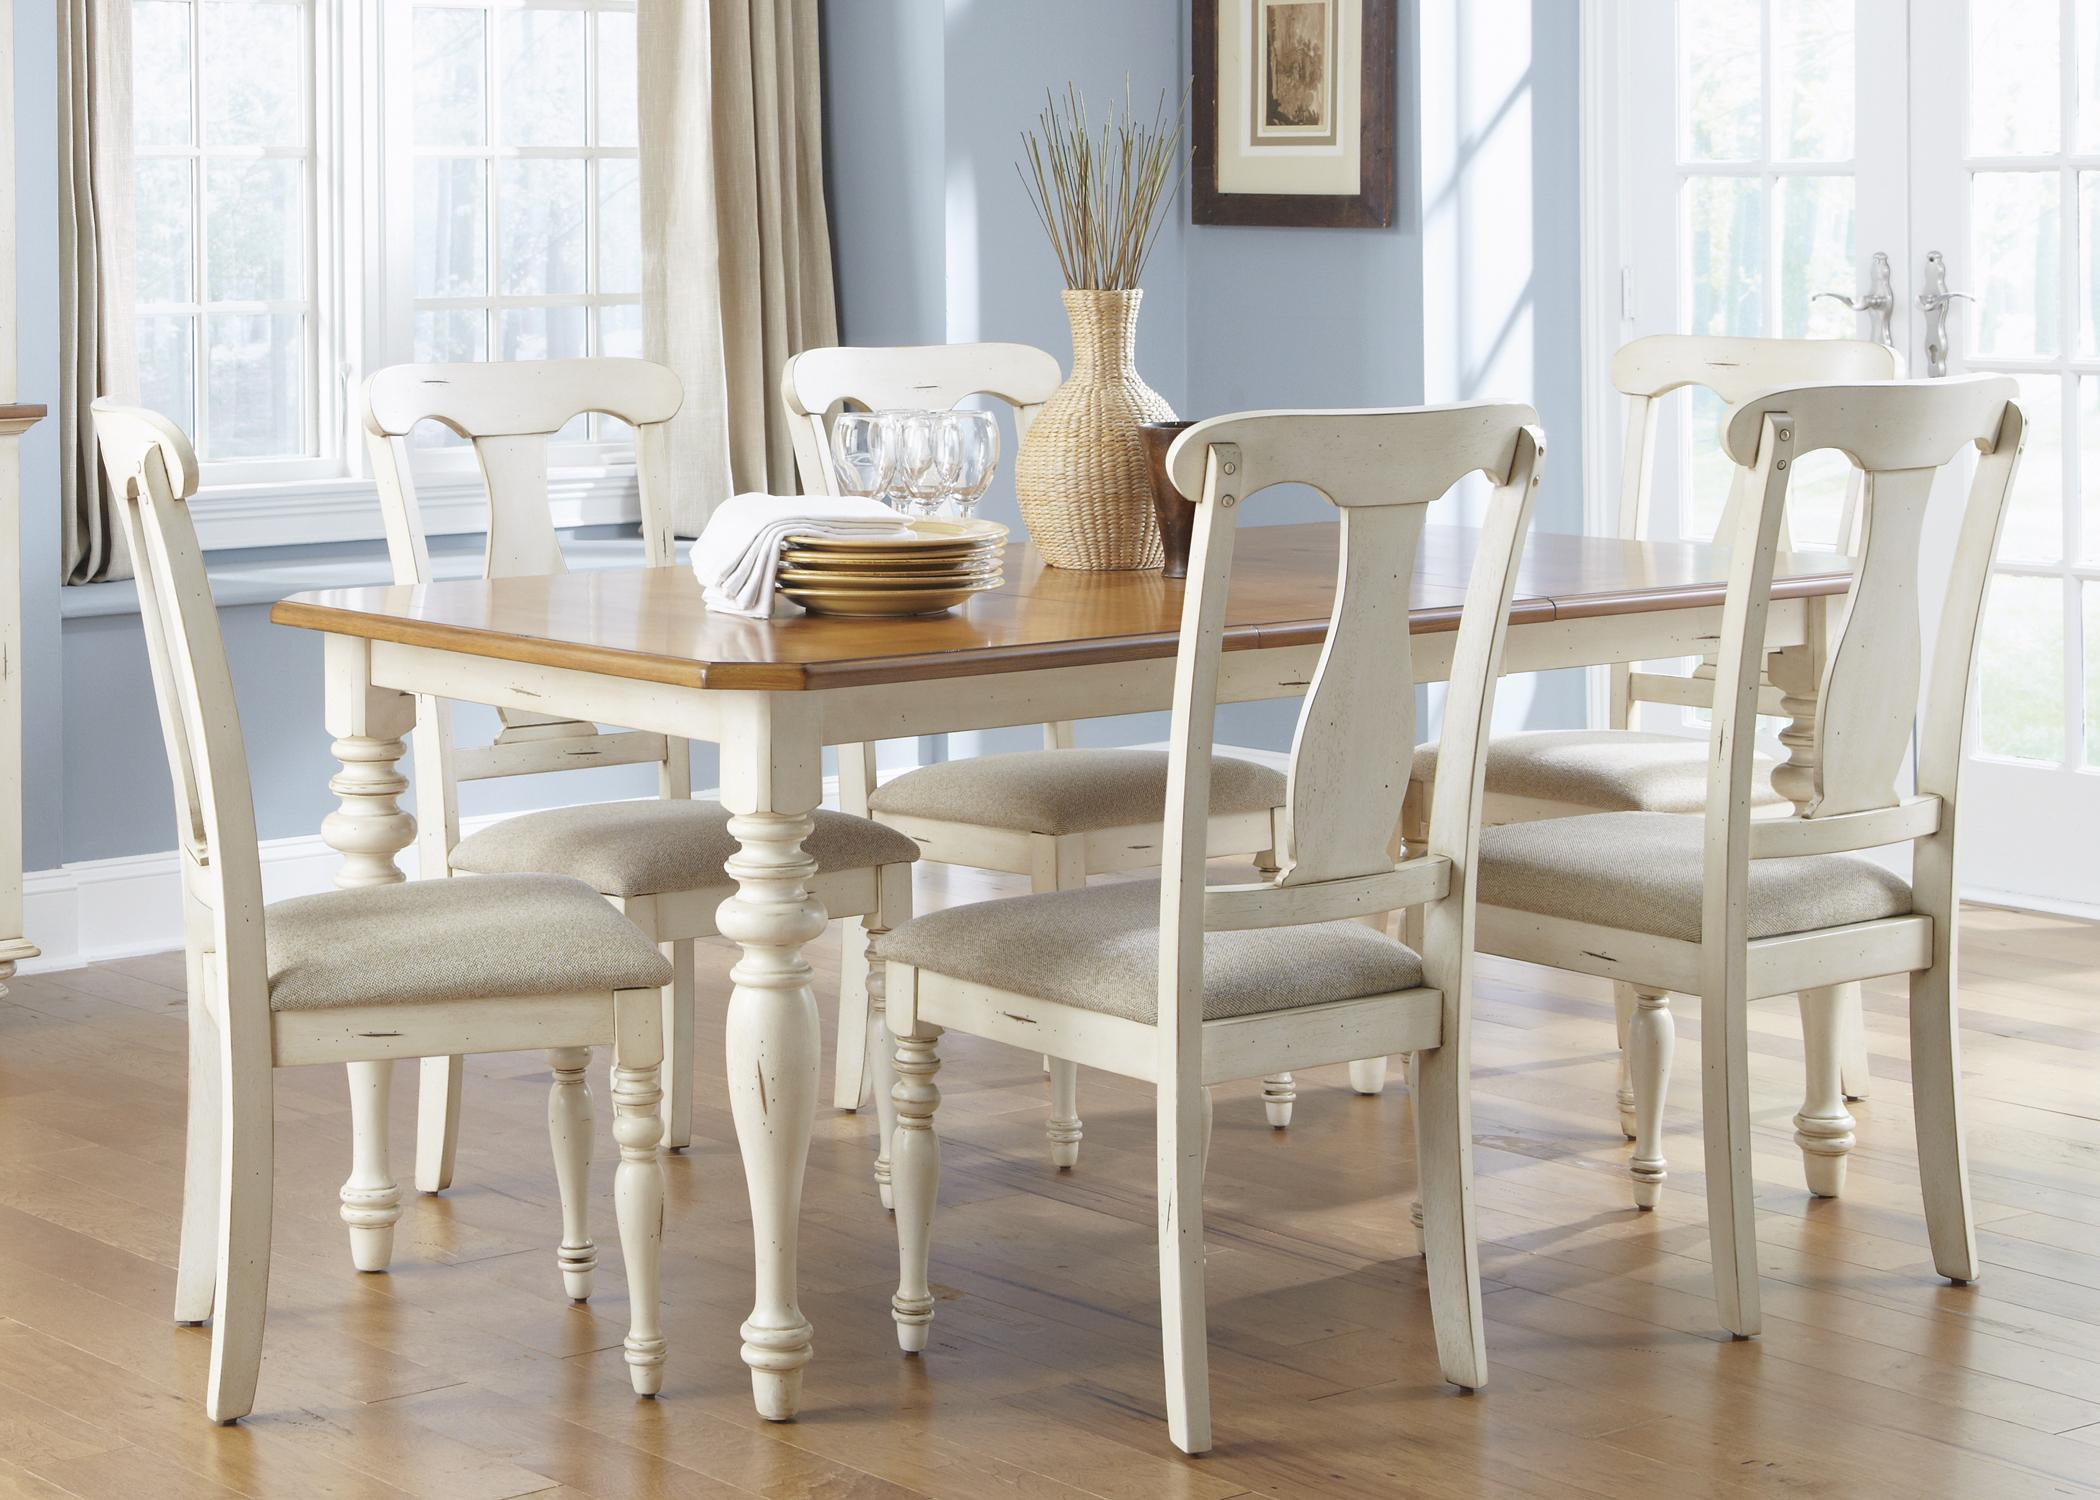 Wonderful 7 Piece Rectangular Table And Chair Dining Set